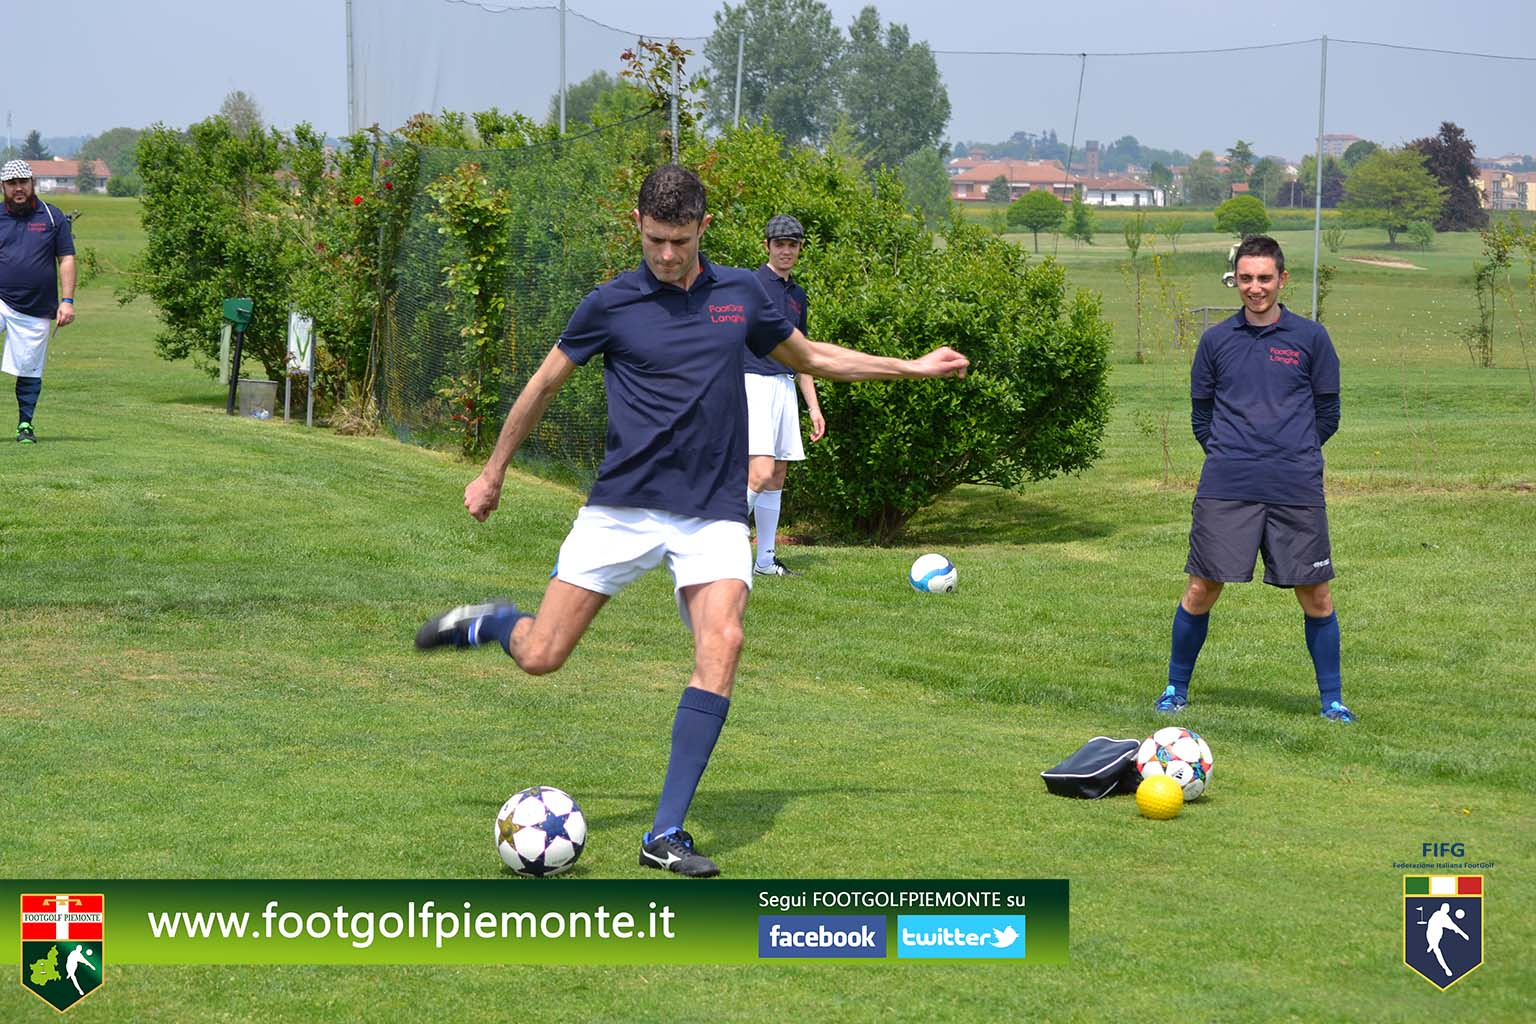 FOTO 9 Regions' Cup Footgolf Piemonte 2016 Golf Città di Asti (At) 30apr16-70